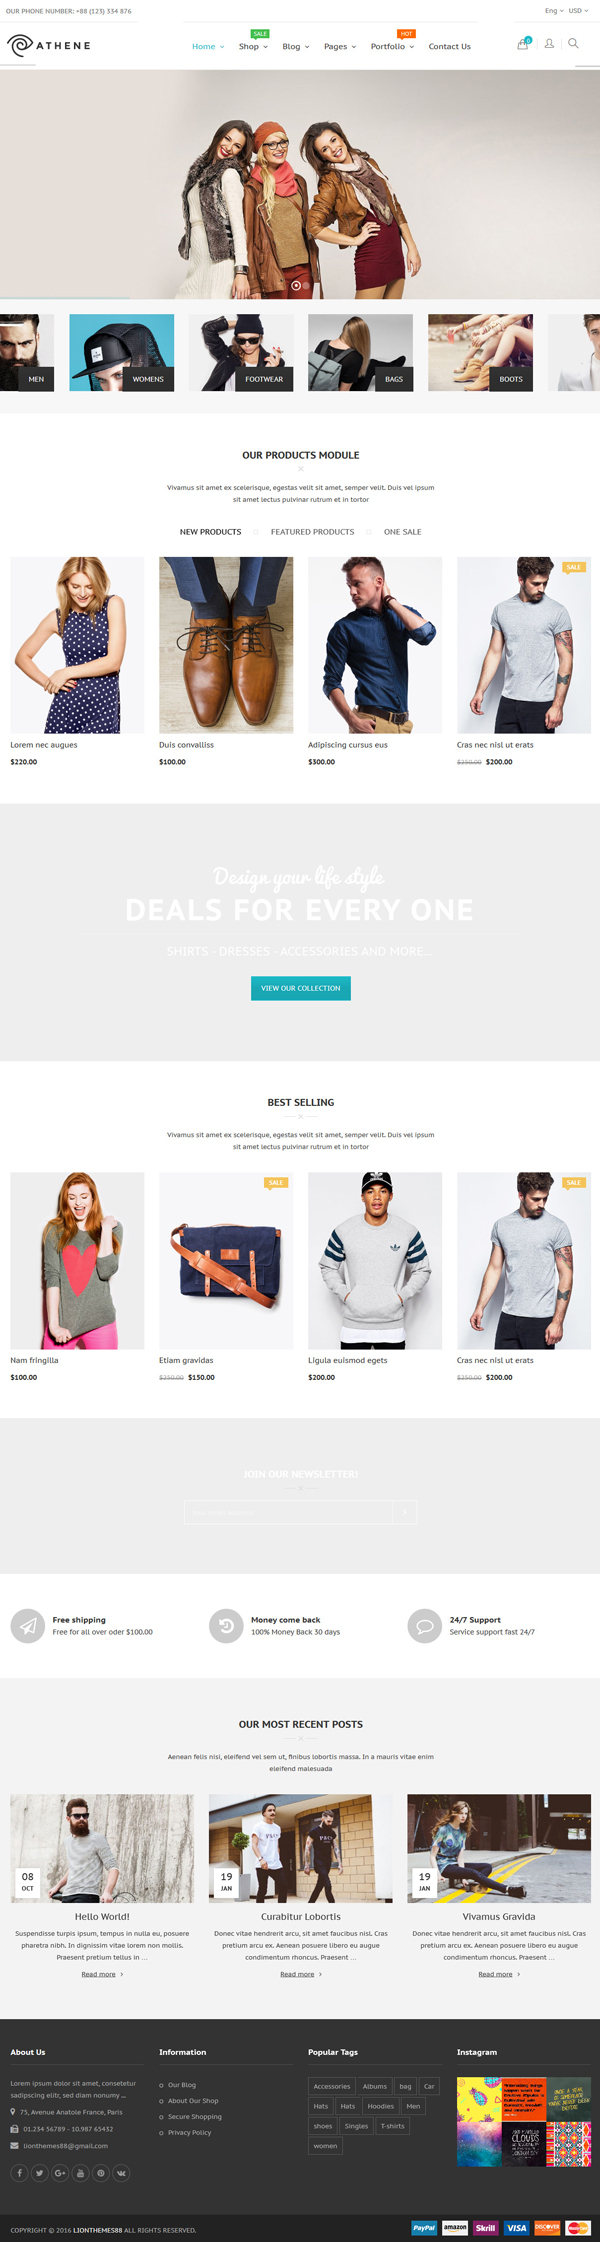 Athene - WooCommerce Responsive Fashion Theme